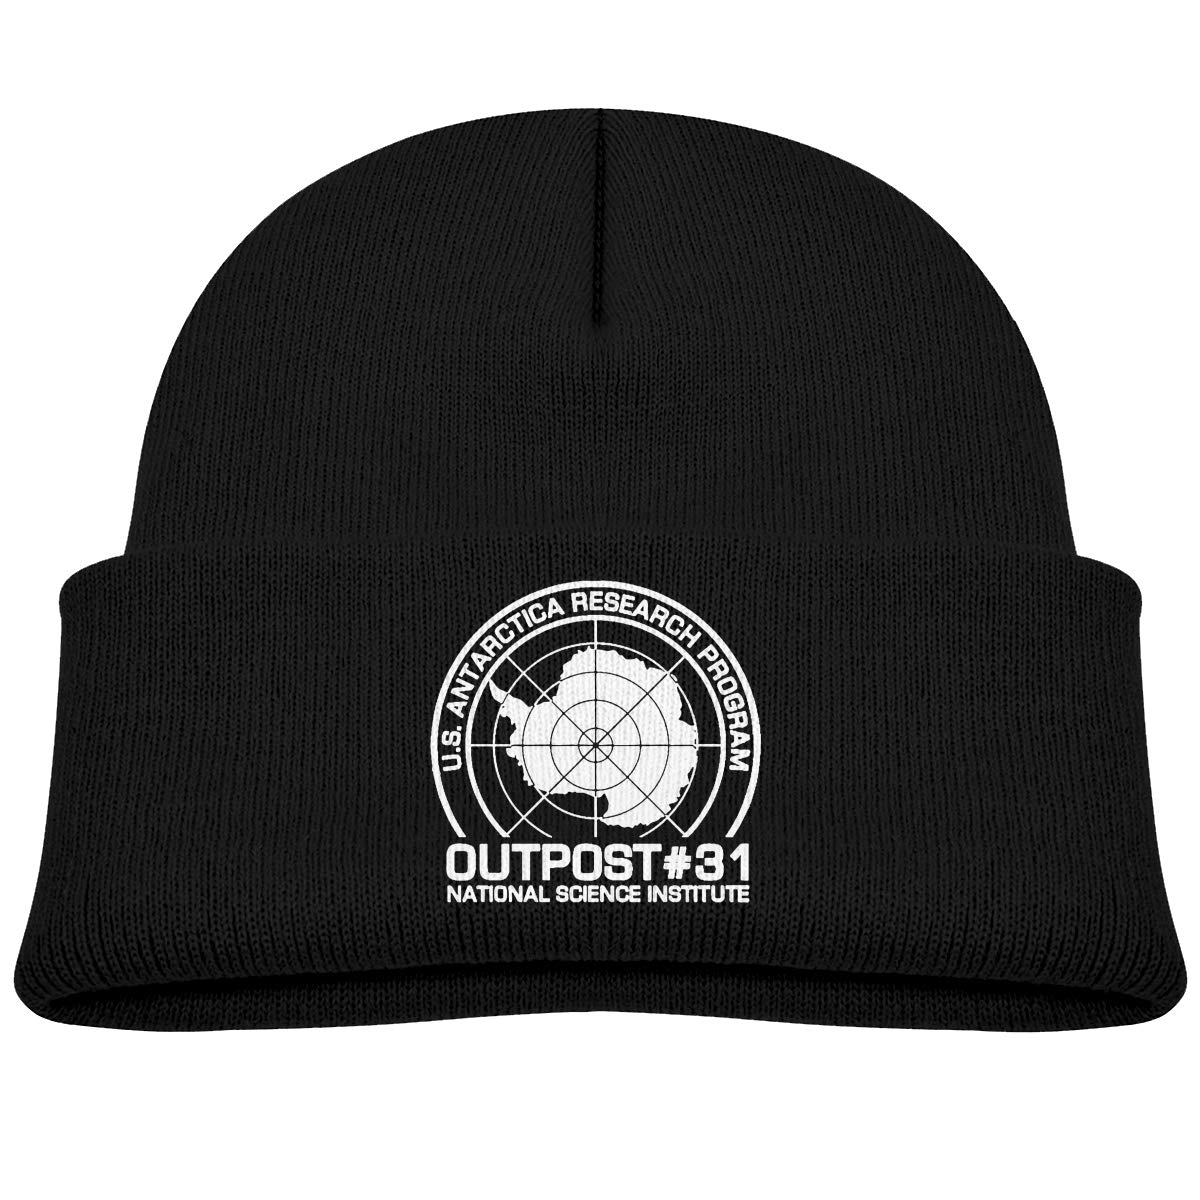 Feeke Outpost 31 Antarctica Research Beanie Cap Thick,Soft,Warm Slouchy Knit Hat for Boys /& Girl Winter Soft Ski Cap